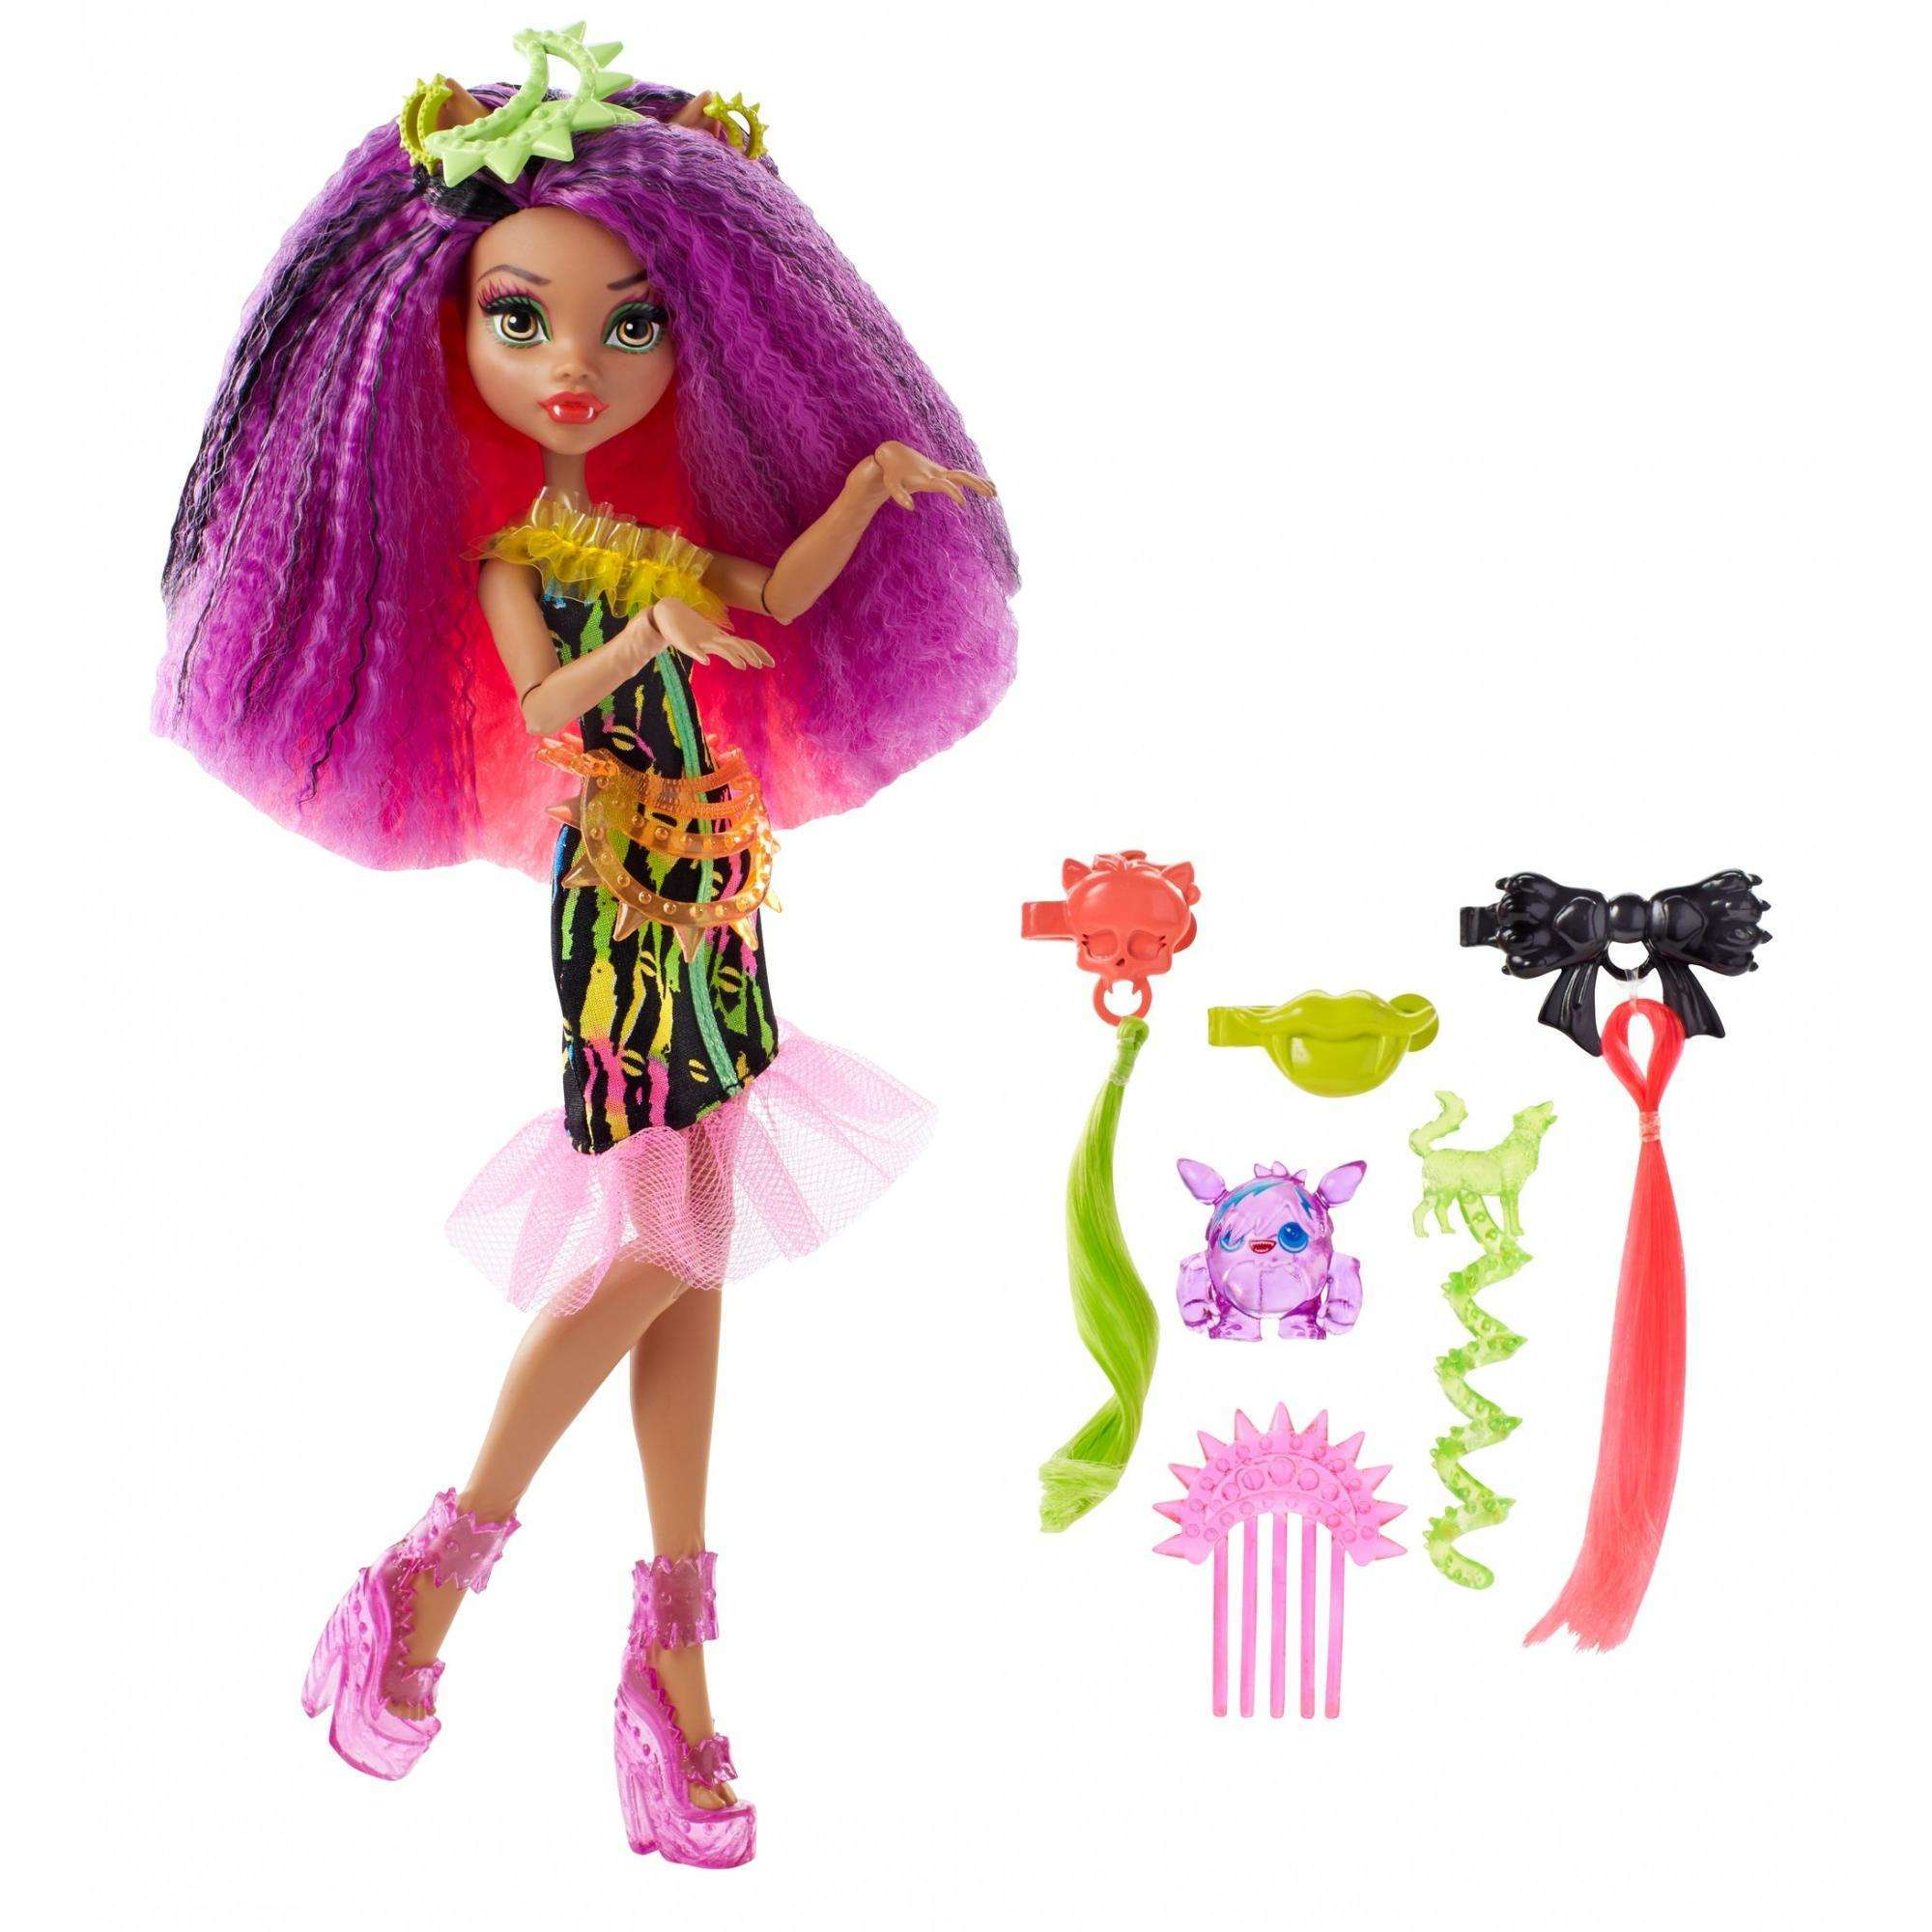 Monster High Electrified Monstrous Hair Ghouls Clawdeen Wolf Doll by MATTEL INC.